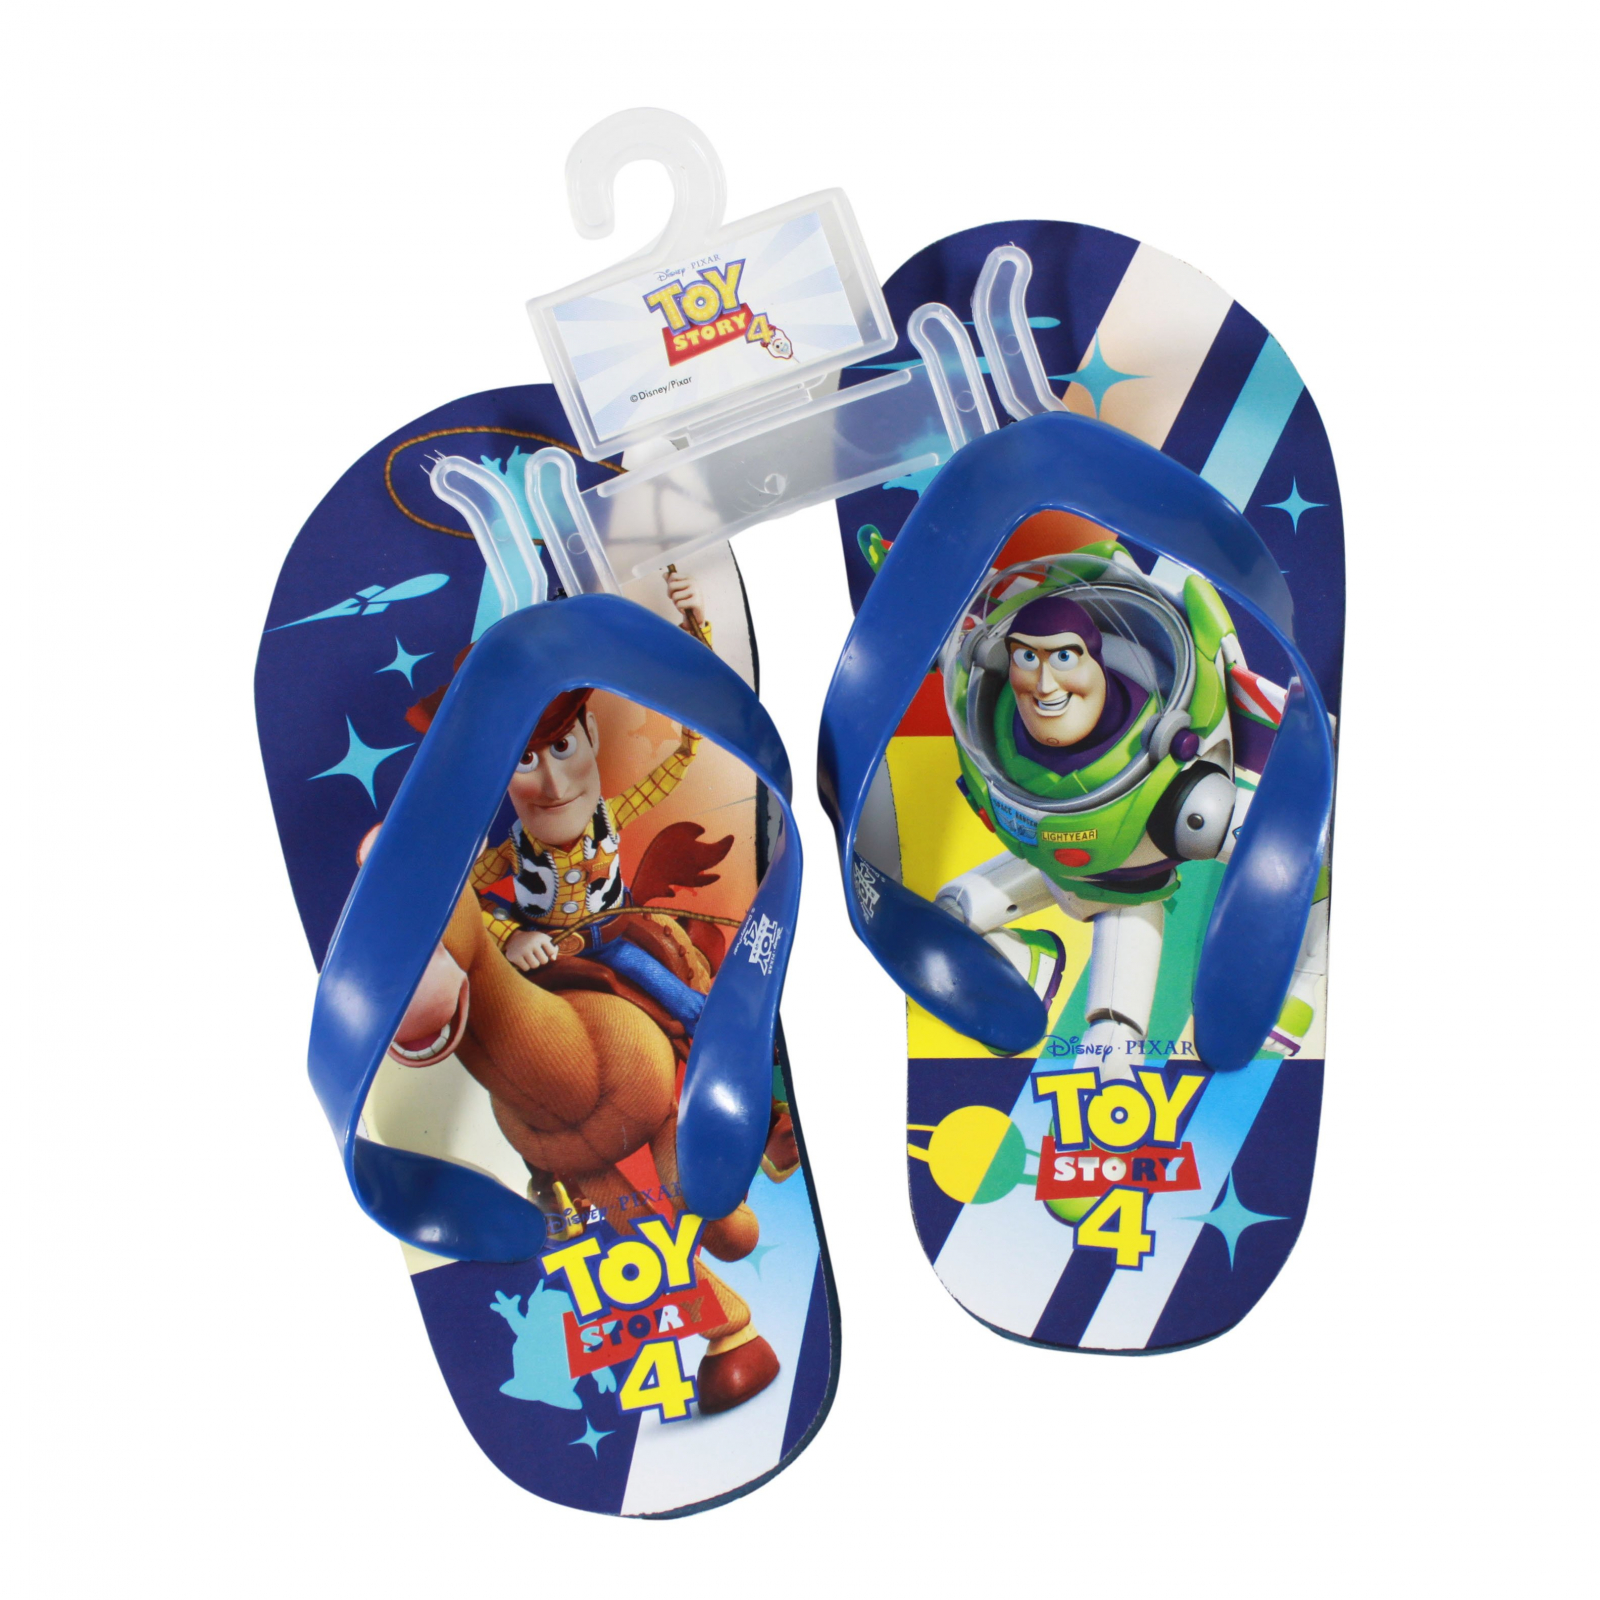 Disney Pixar Toy Story 4 Kids Sandals Blue Strap Large 9/10